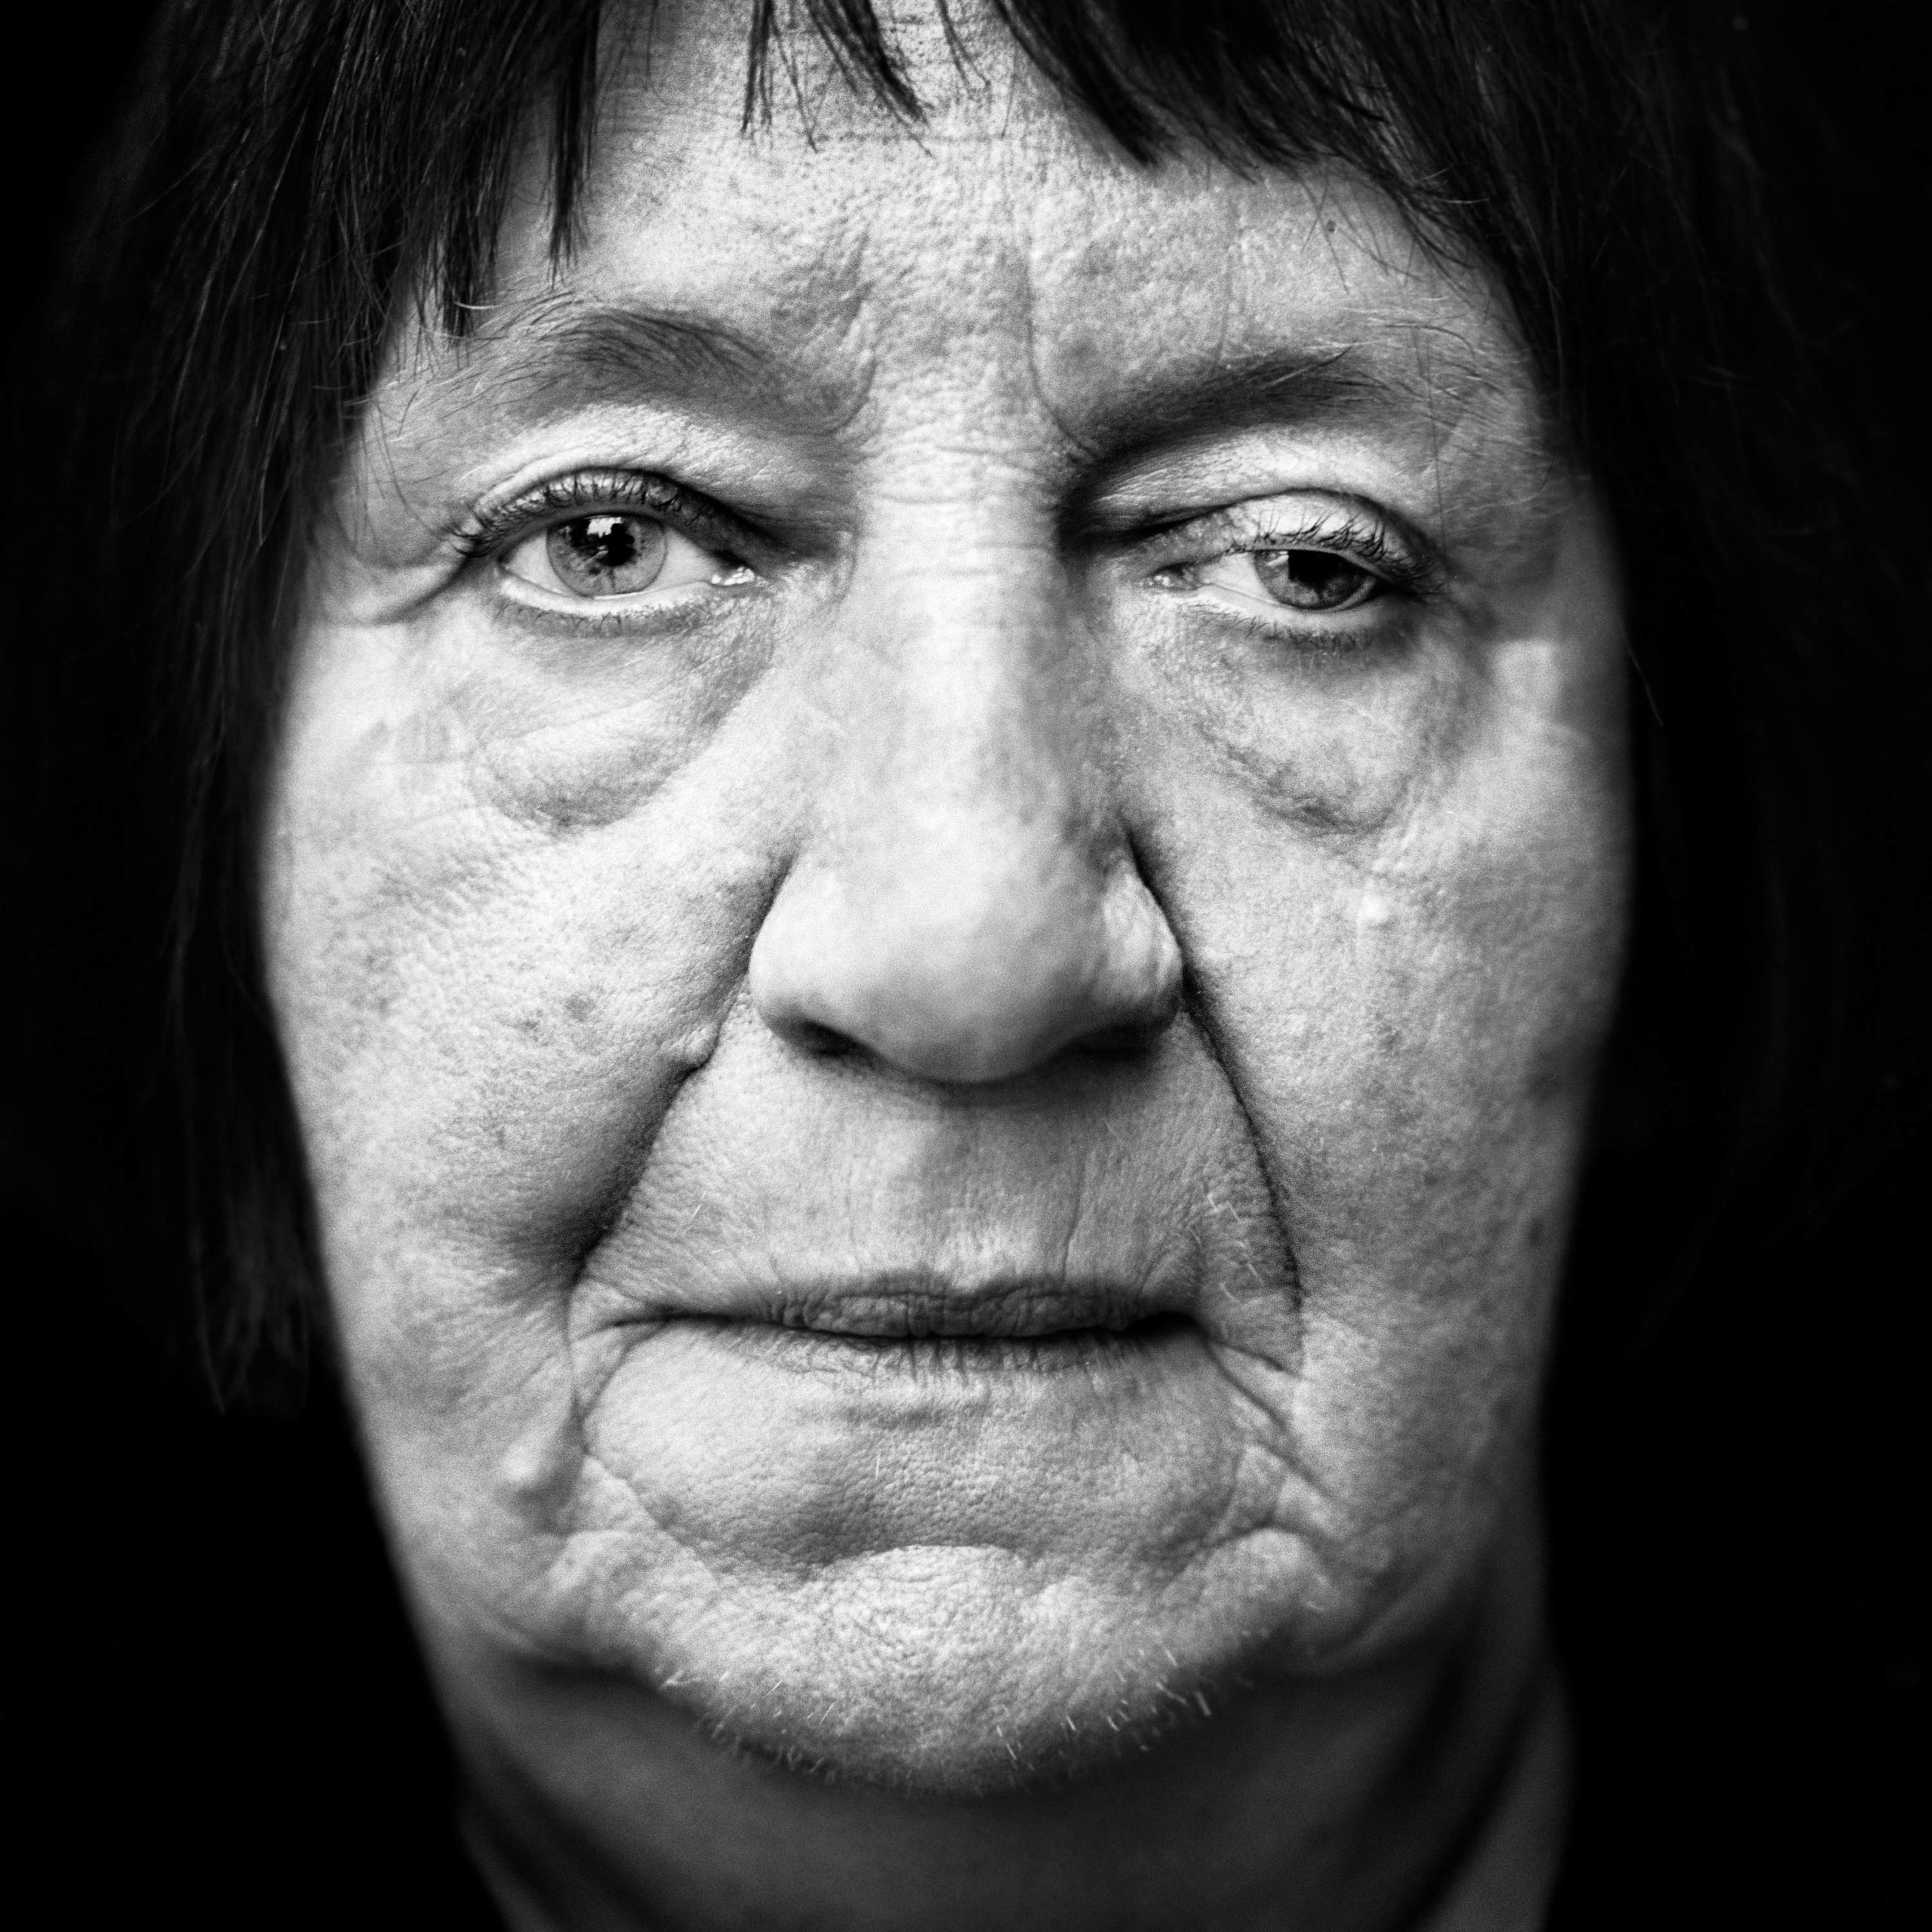 """Helene Boppert (Germany, 1938). Interview outtake: """"The Americans dropped incendiary bombs on our street. Sixty-five people were killed. My father was killed, and both my brothers were killed. I was unconscious when slave laborers rescued me from our burning house. Both my legs were broken, and I could hardly see a thing."""""""